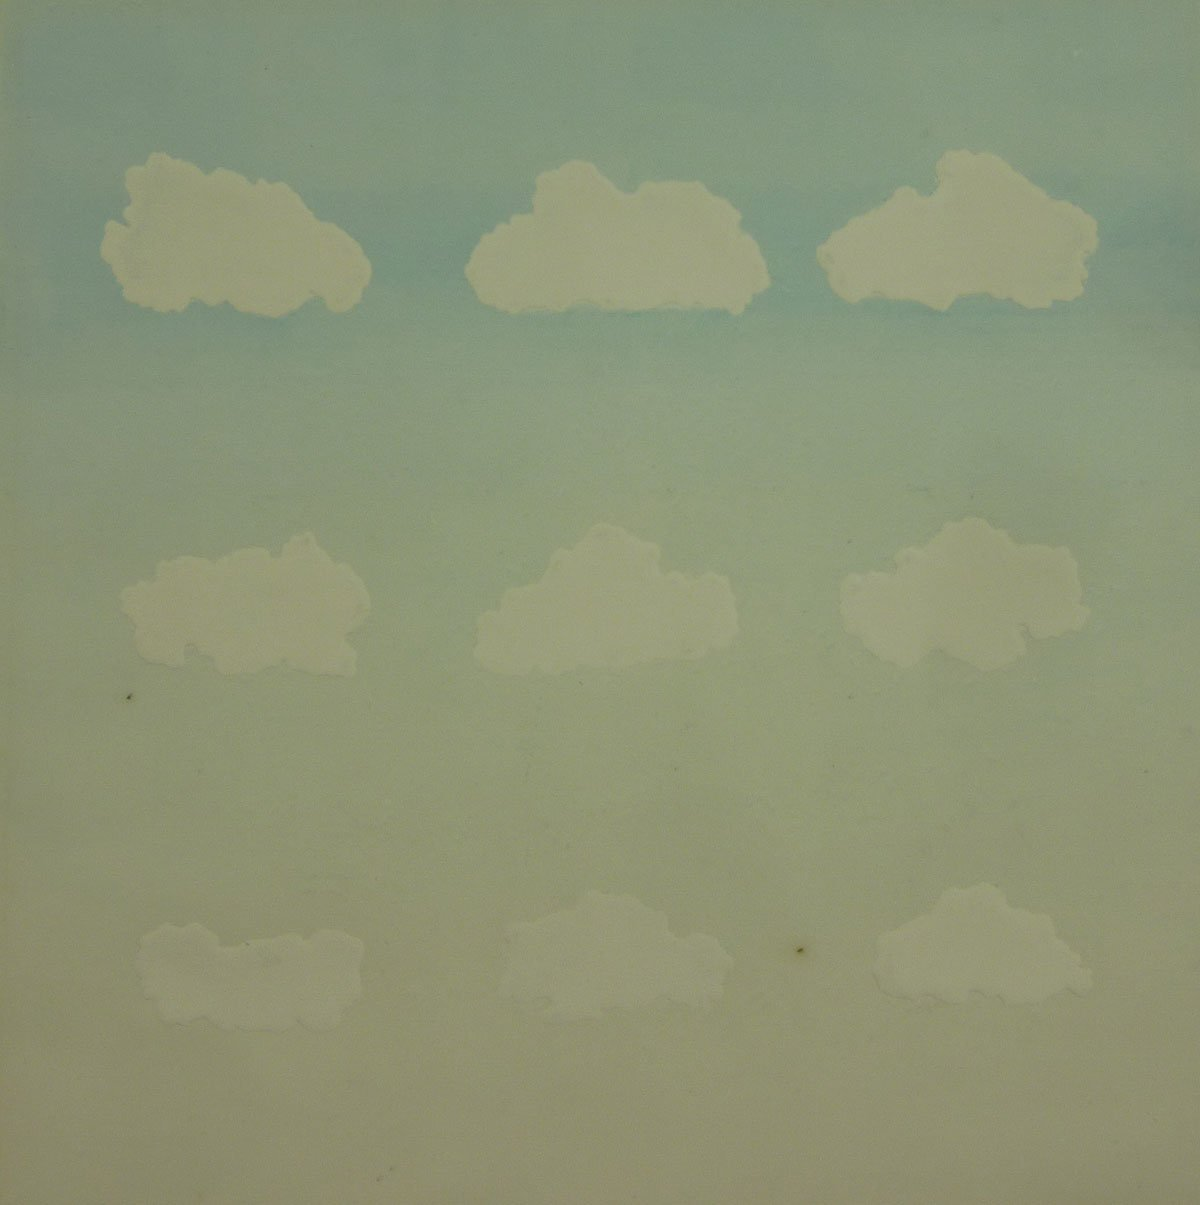 Prints-B-(Clouds—9-clouds)-2019-08-12-12.32.42-2